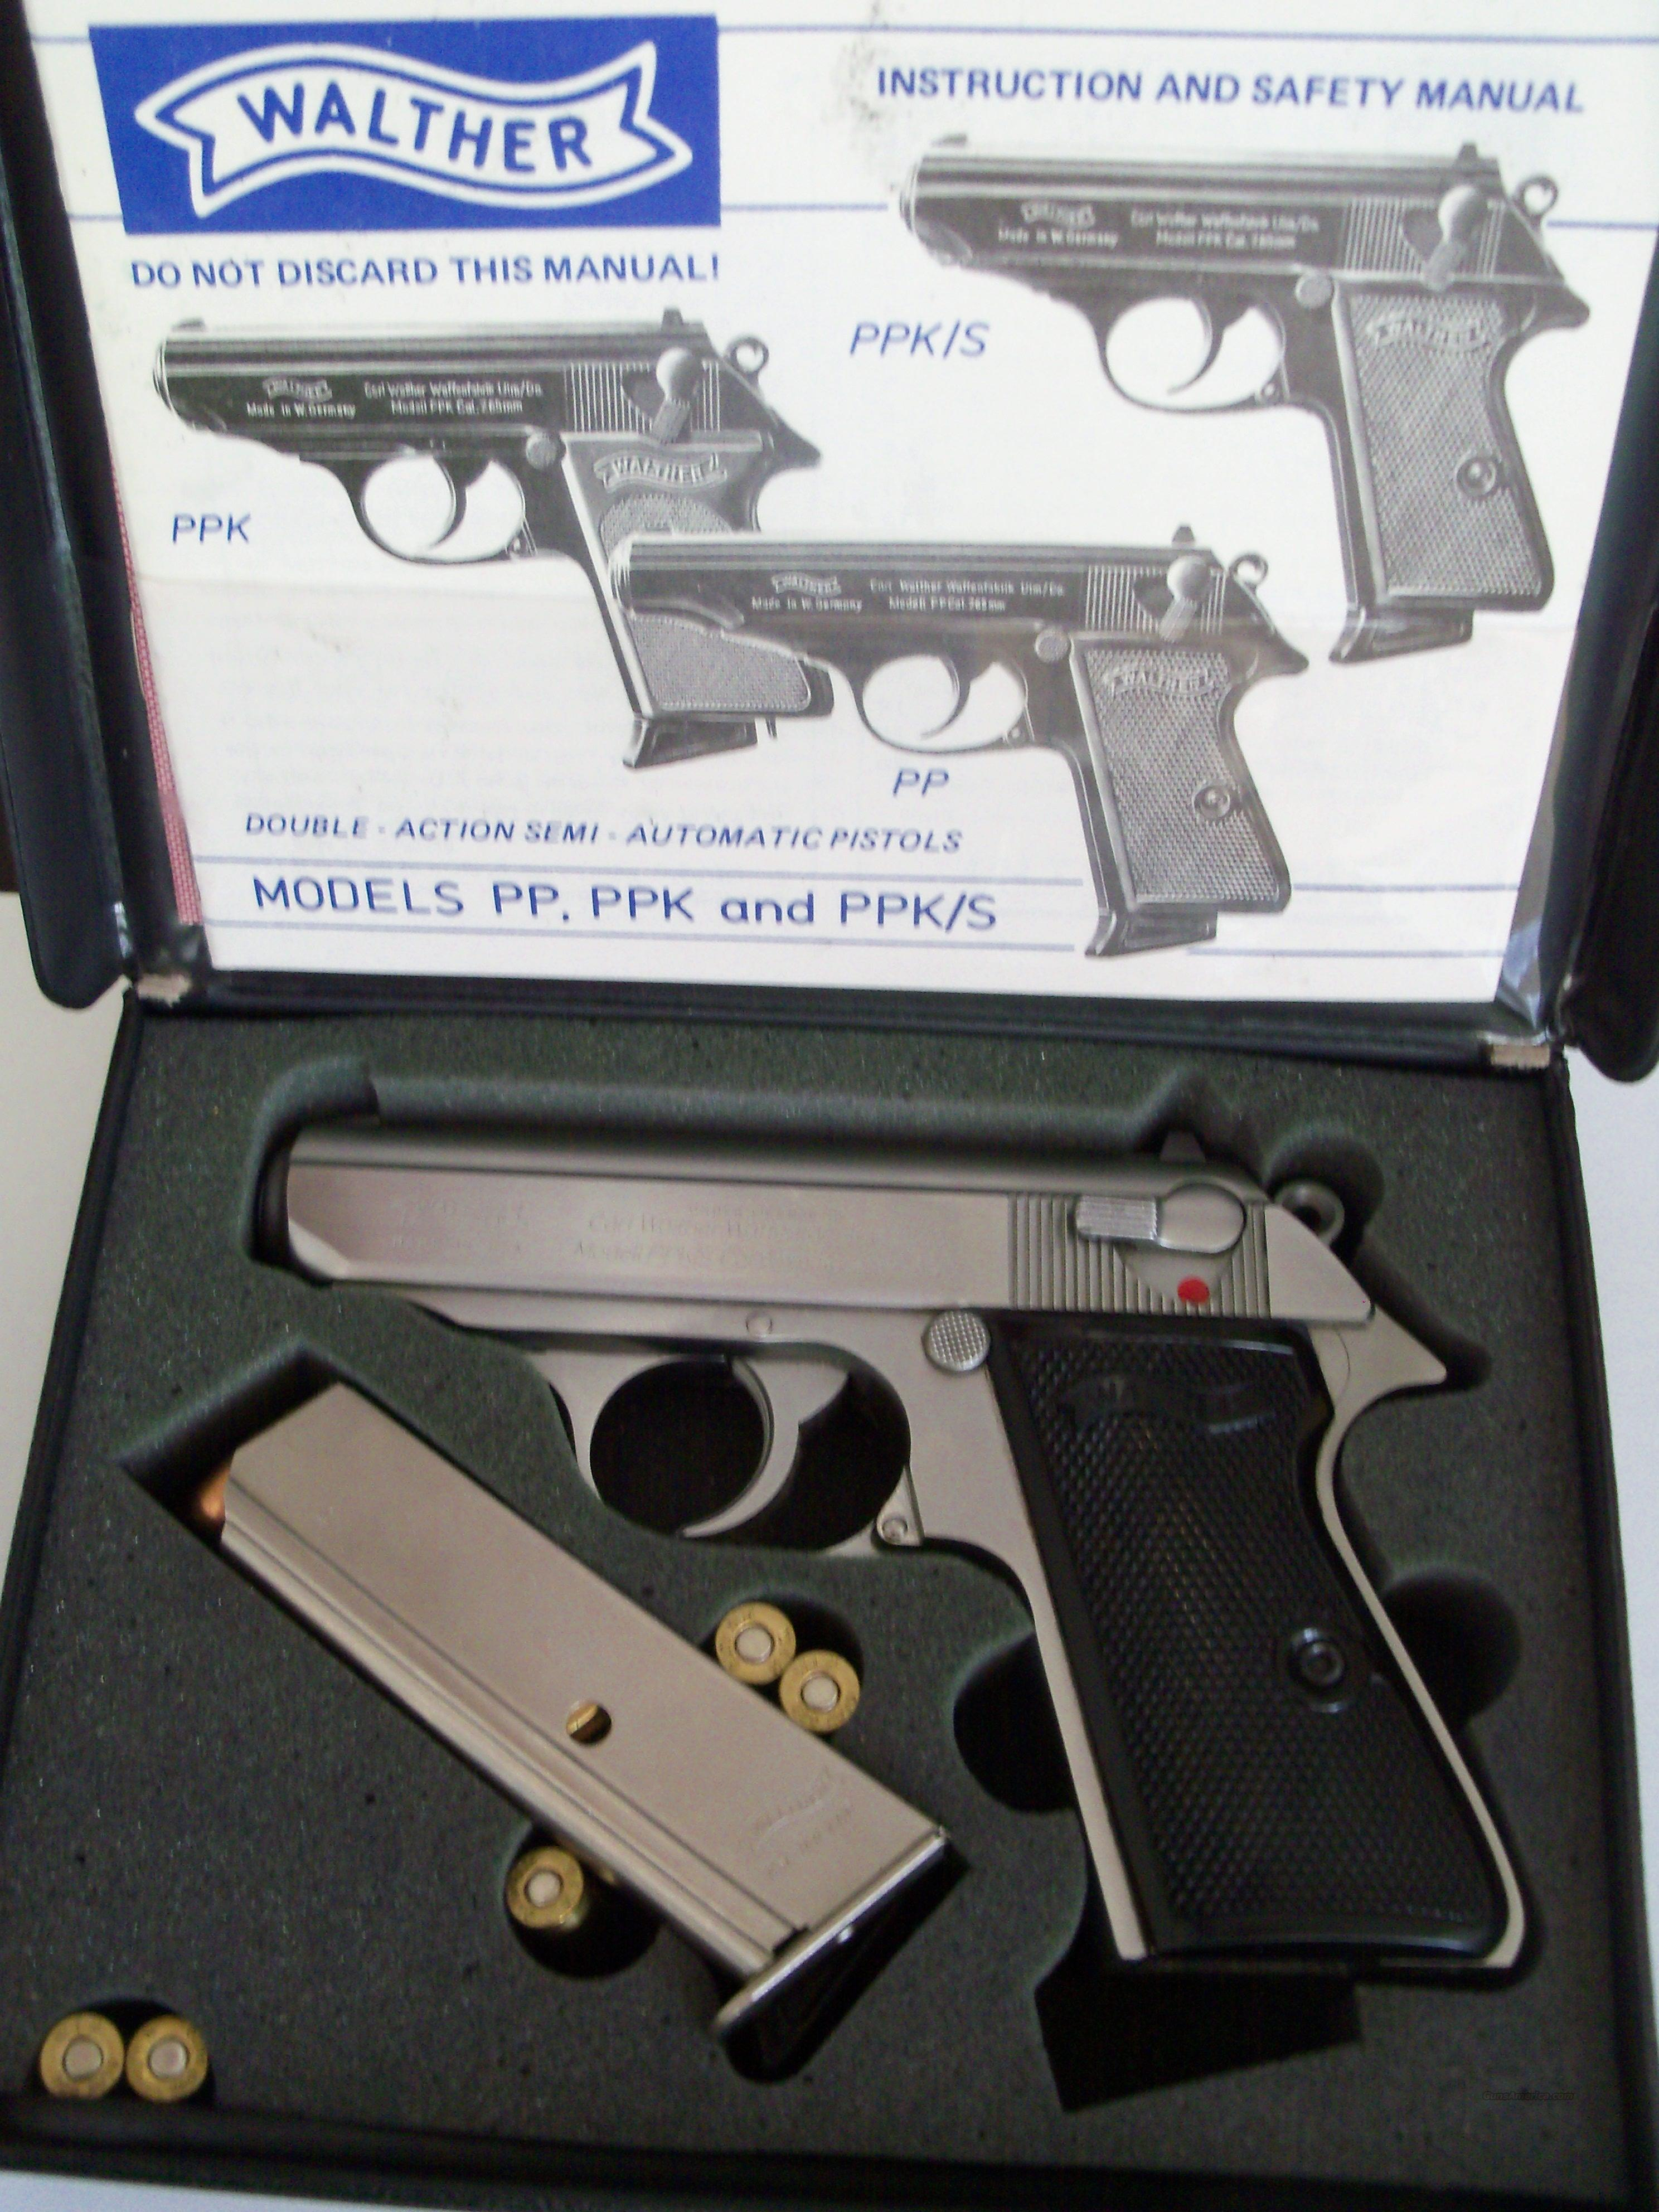 MINT EARLY CARL WALTHER PPK/S 380 ACP 9MM SHORT       INTERARMS 9 MM KURZ PP PPK JAMES BOND 9MM  Guns > Pistols > Walther Pistols > Post WWII > PPK Series